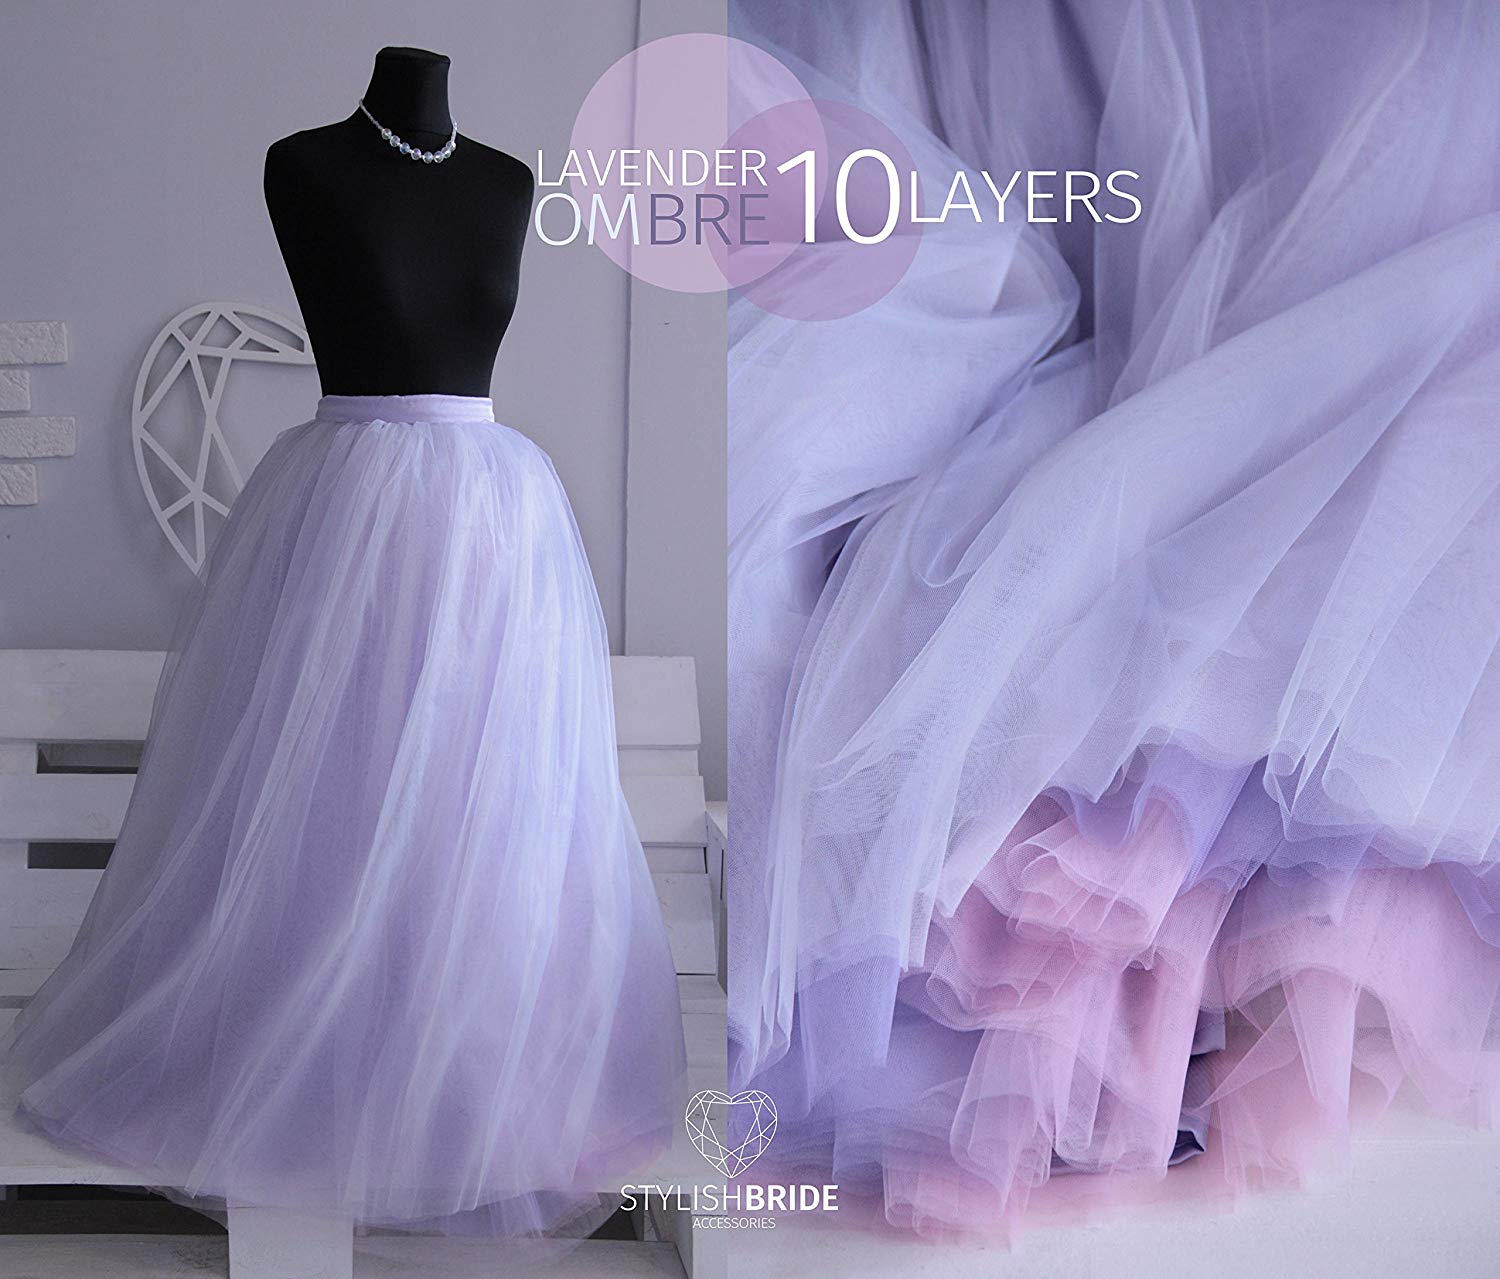 f049464f6d Get Quotations · Ombre Super Lush Wedding Tulle Skirt Lavender Tulle Skirt  Bridal, Women Tulle Skirt, Princess